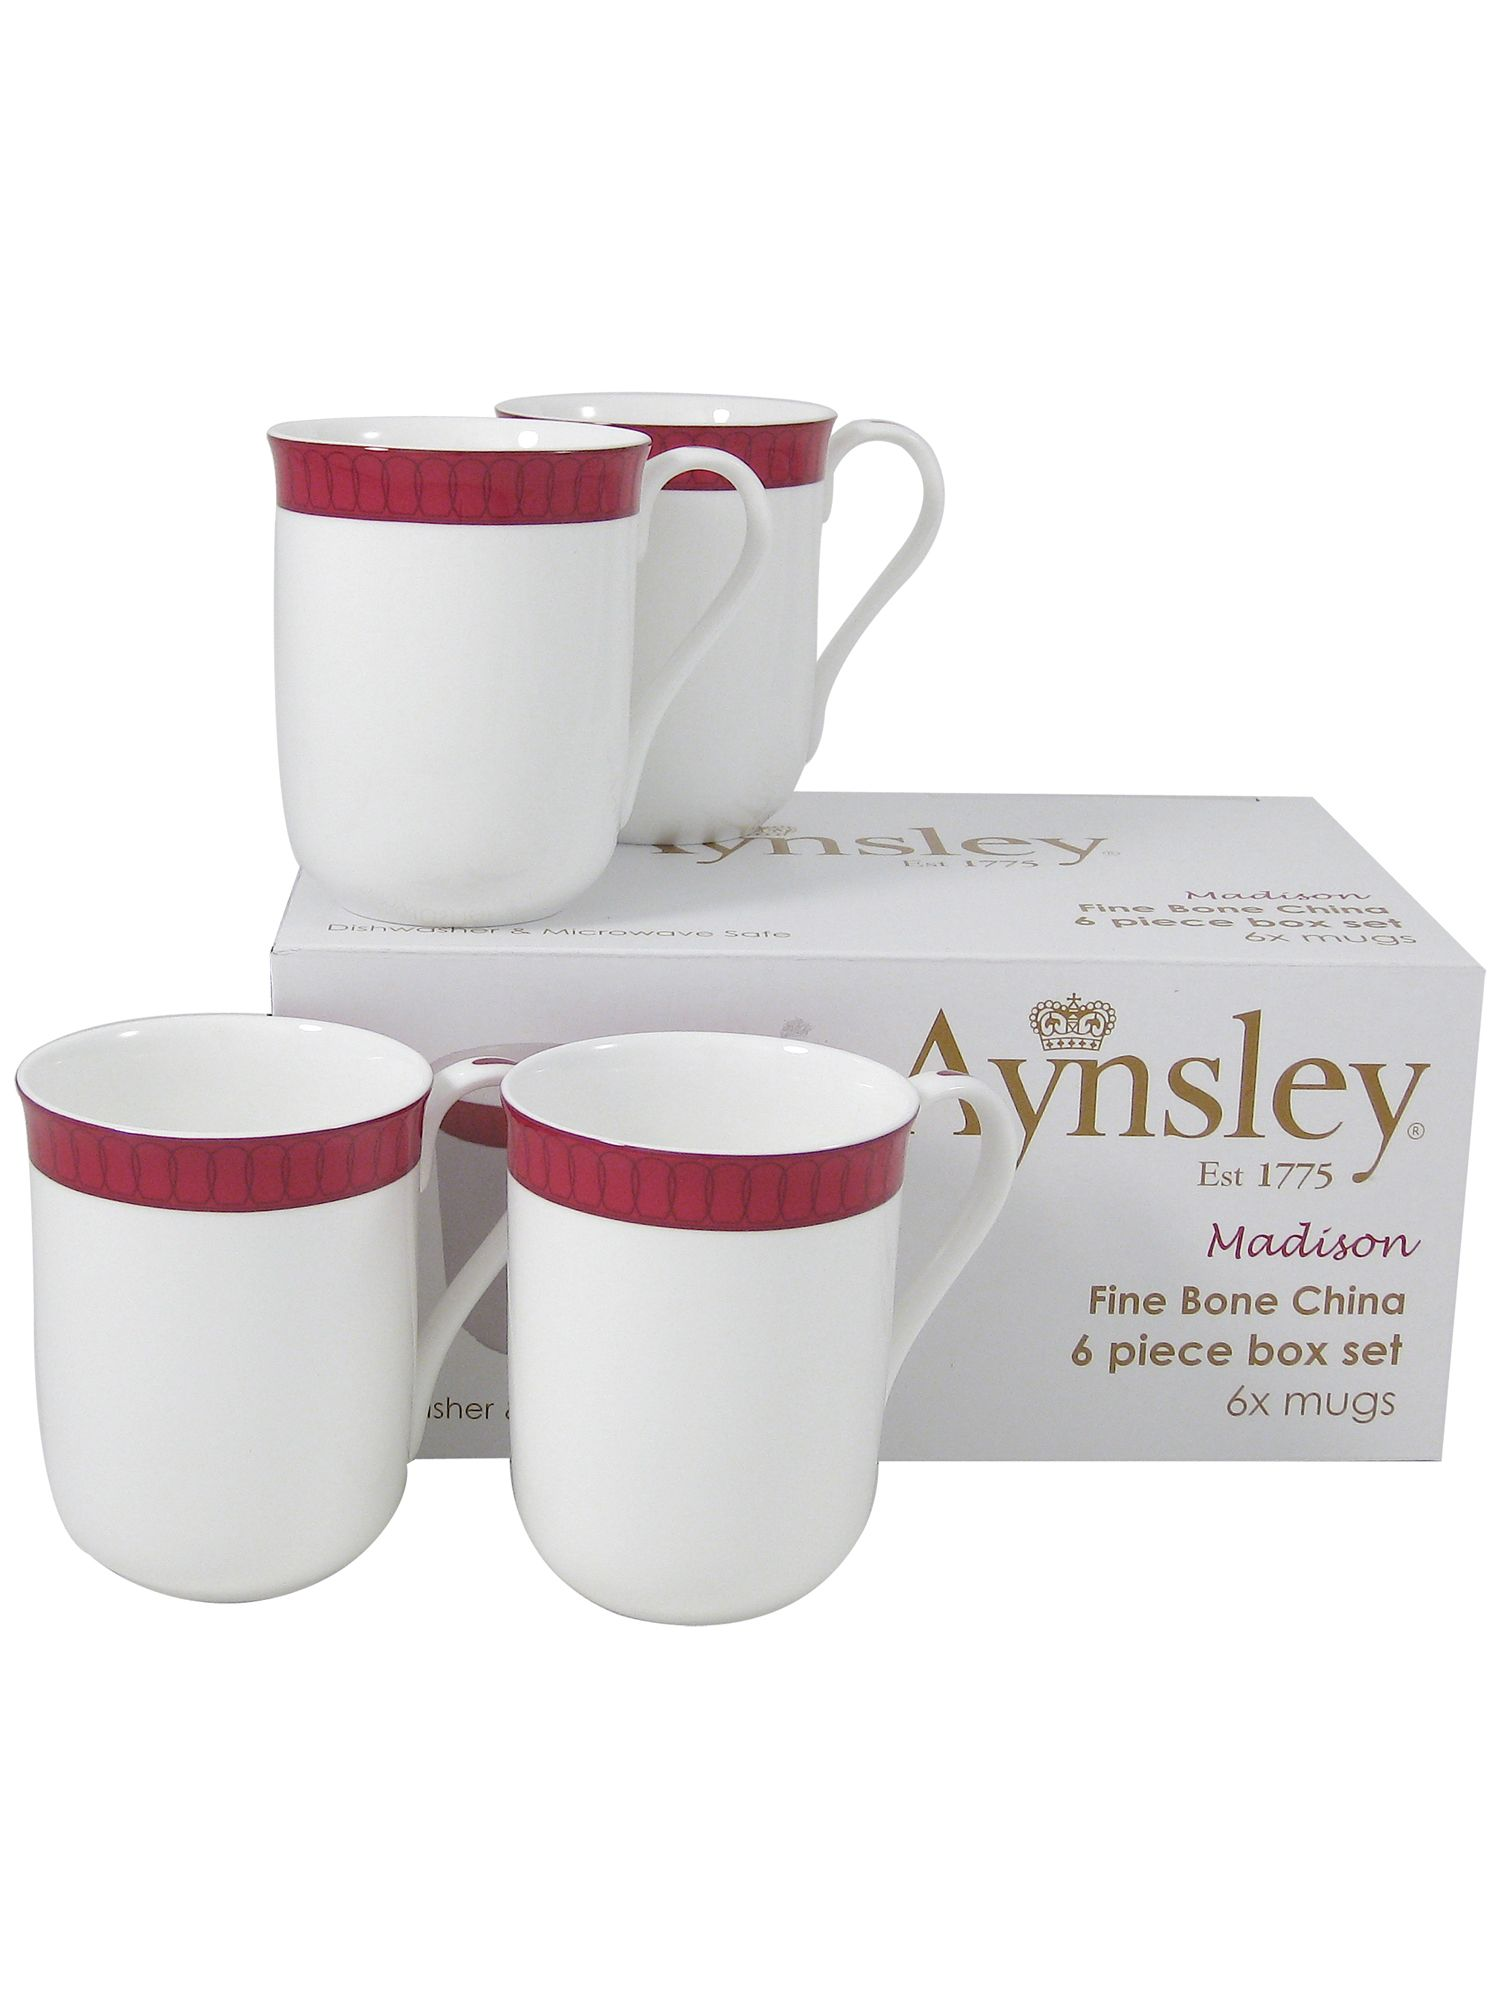 Aynsley Aynsley Madison six mugs set